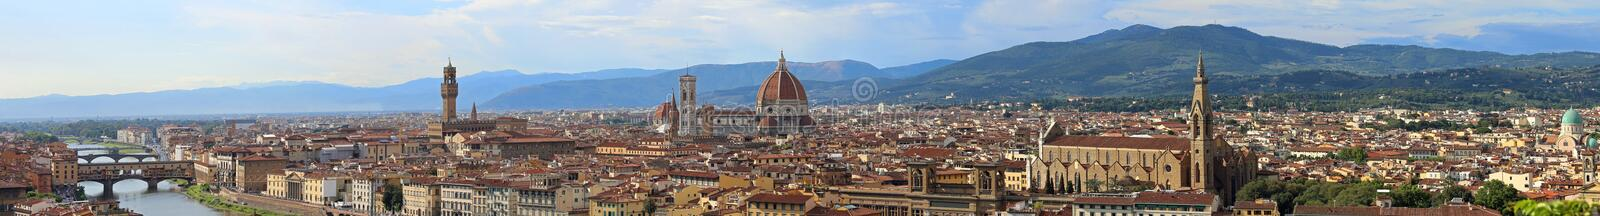 Florence Italy Incredible Stitched Panorama royalty-vrije stock fotografie